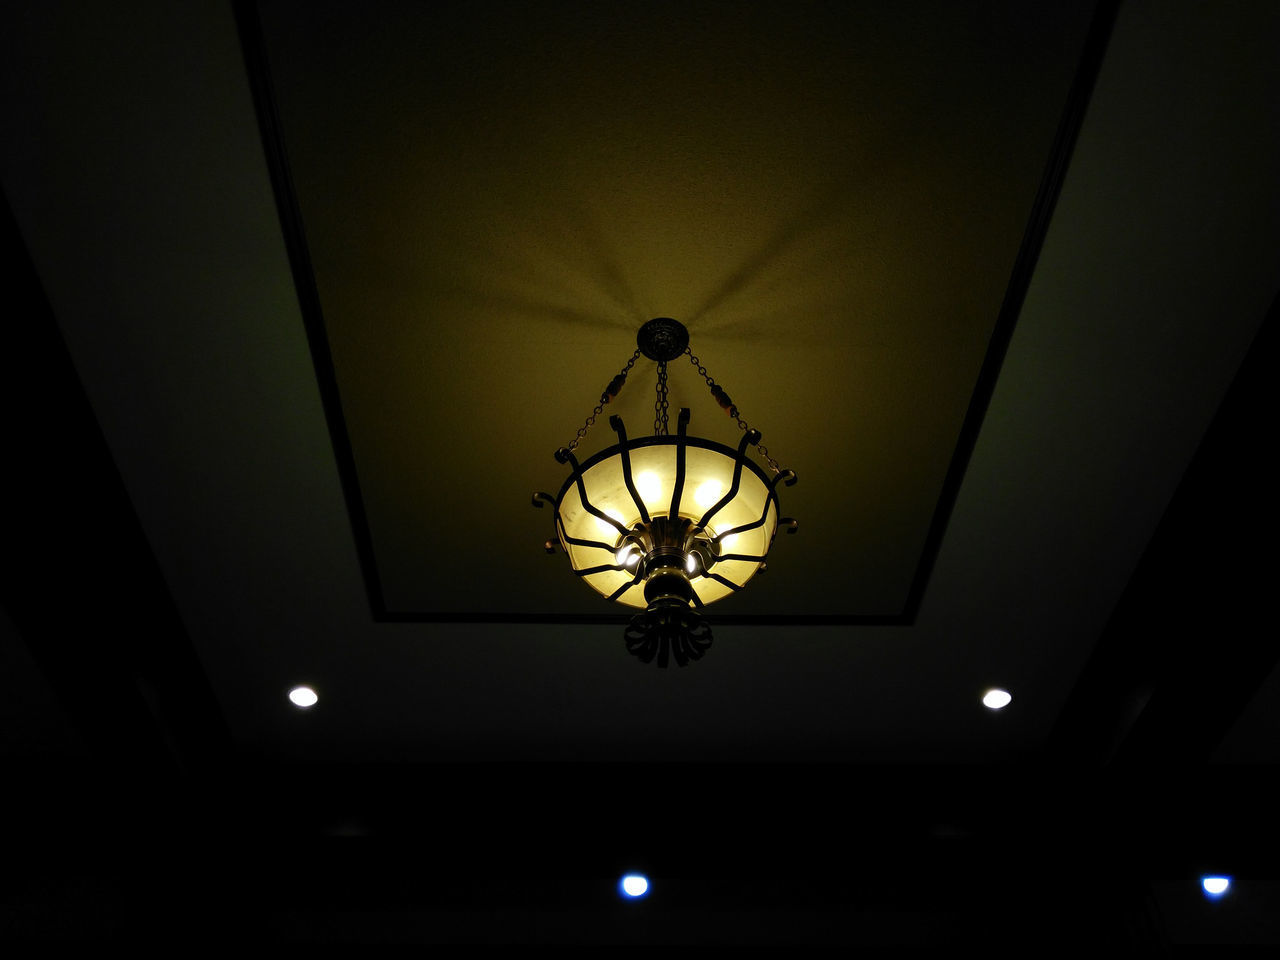 illuminated, lighting equipment, indoors, ceiling, low angle view, electricity, electric light, hanging, no people, night, technology, close-up